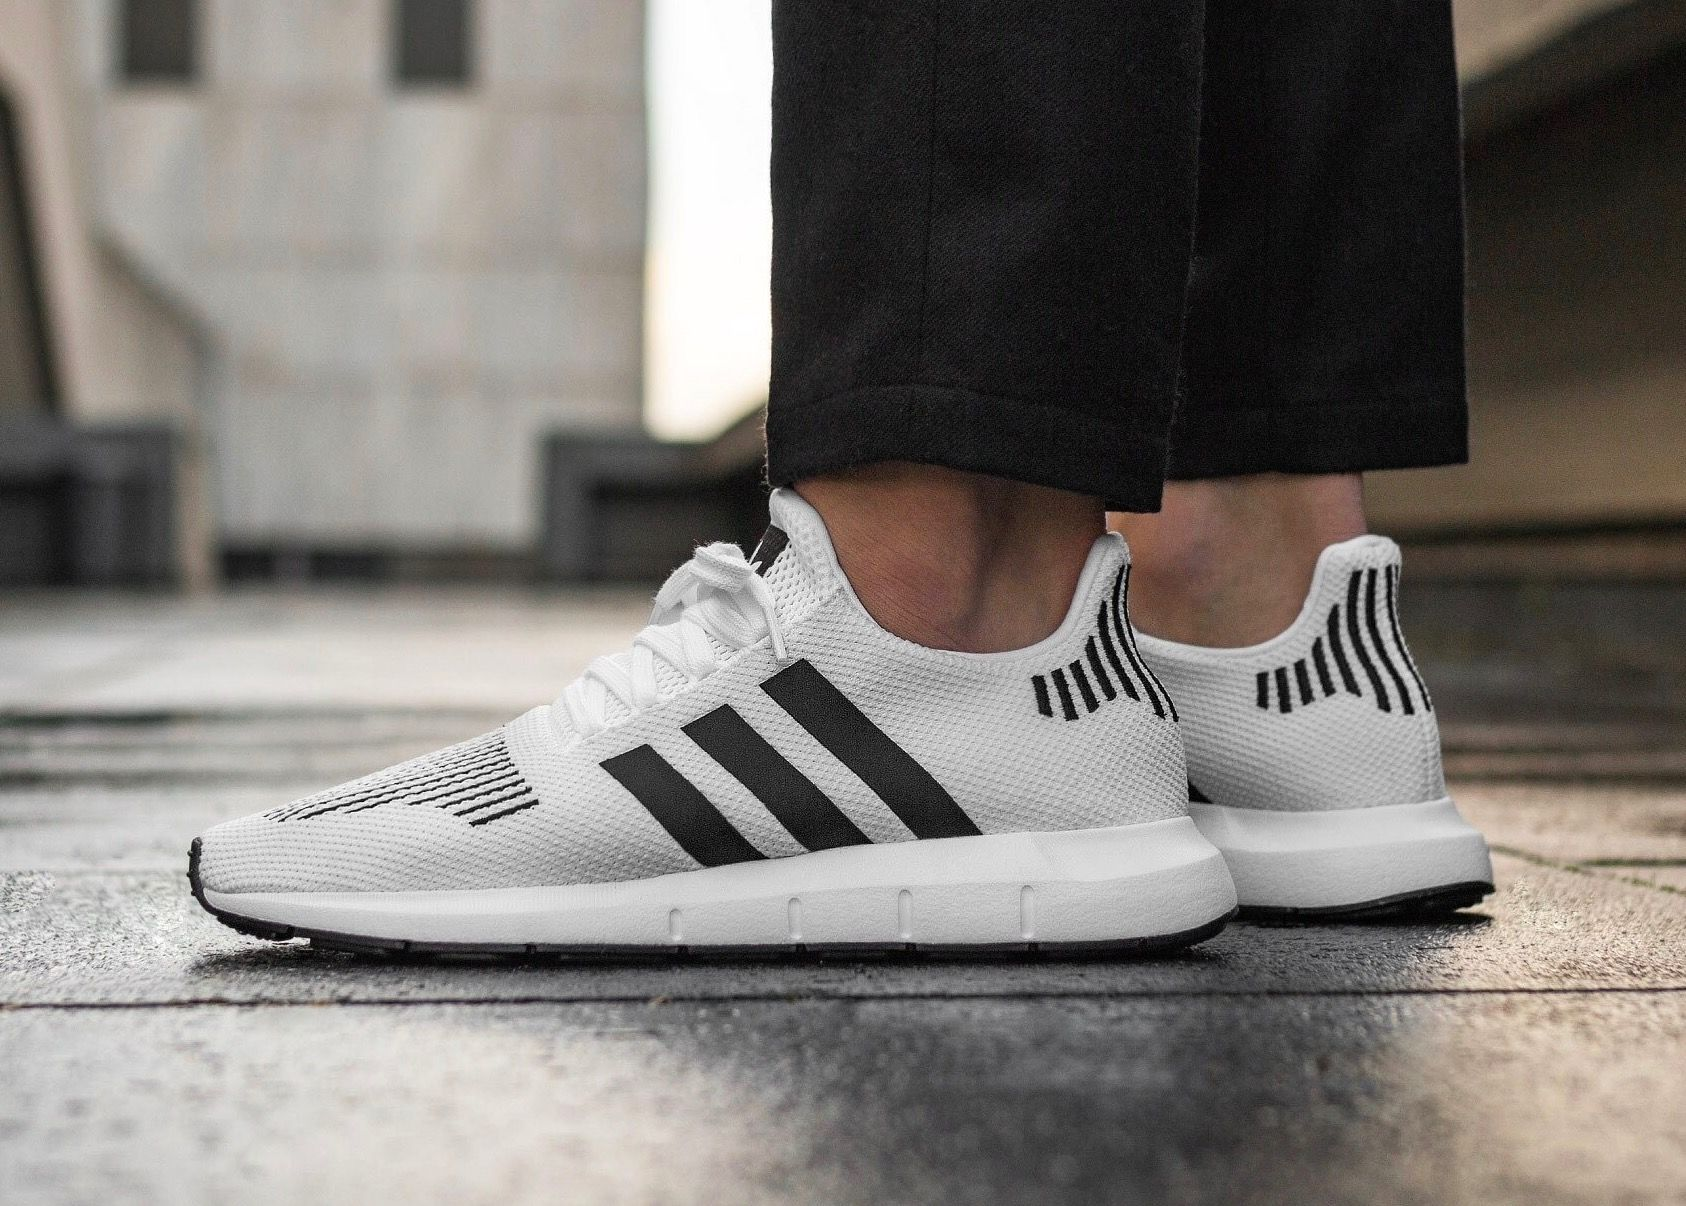 outlet adidas sneakers 69% korting daxisweb.nl